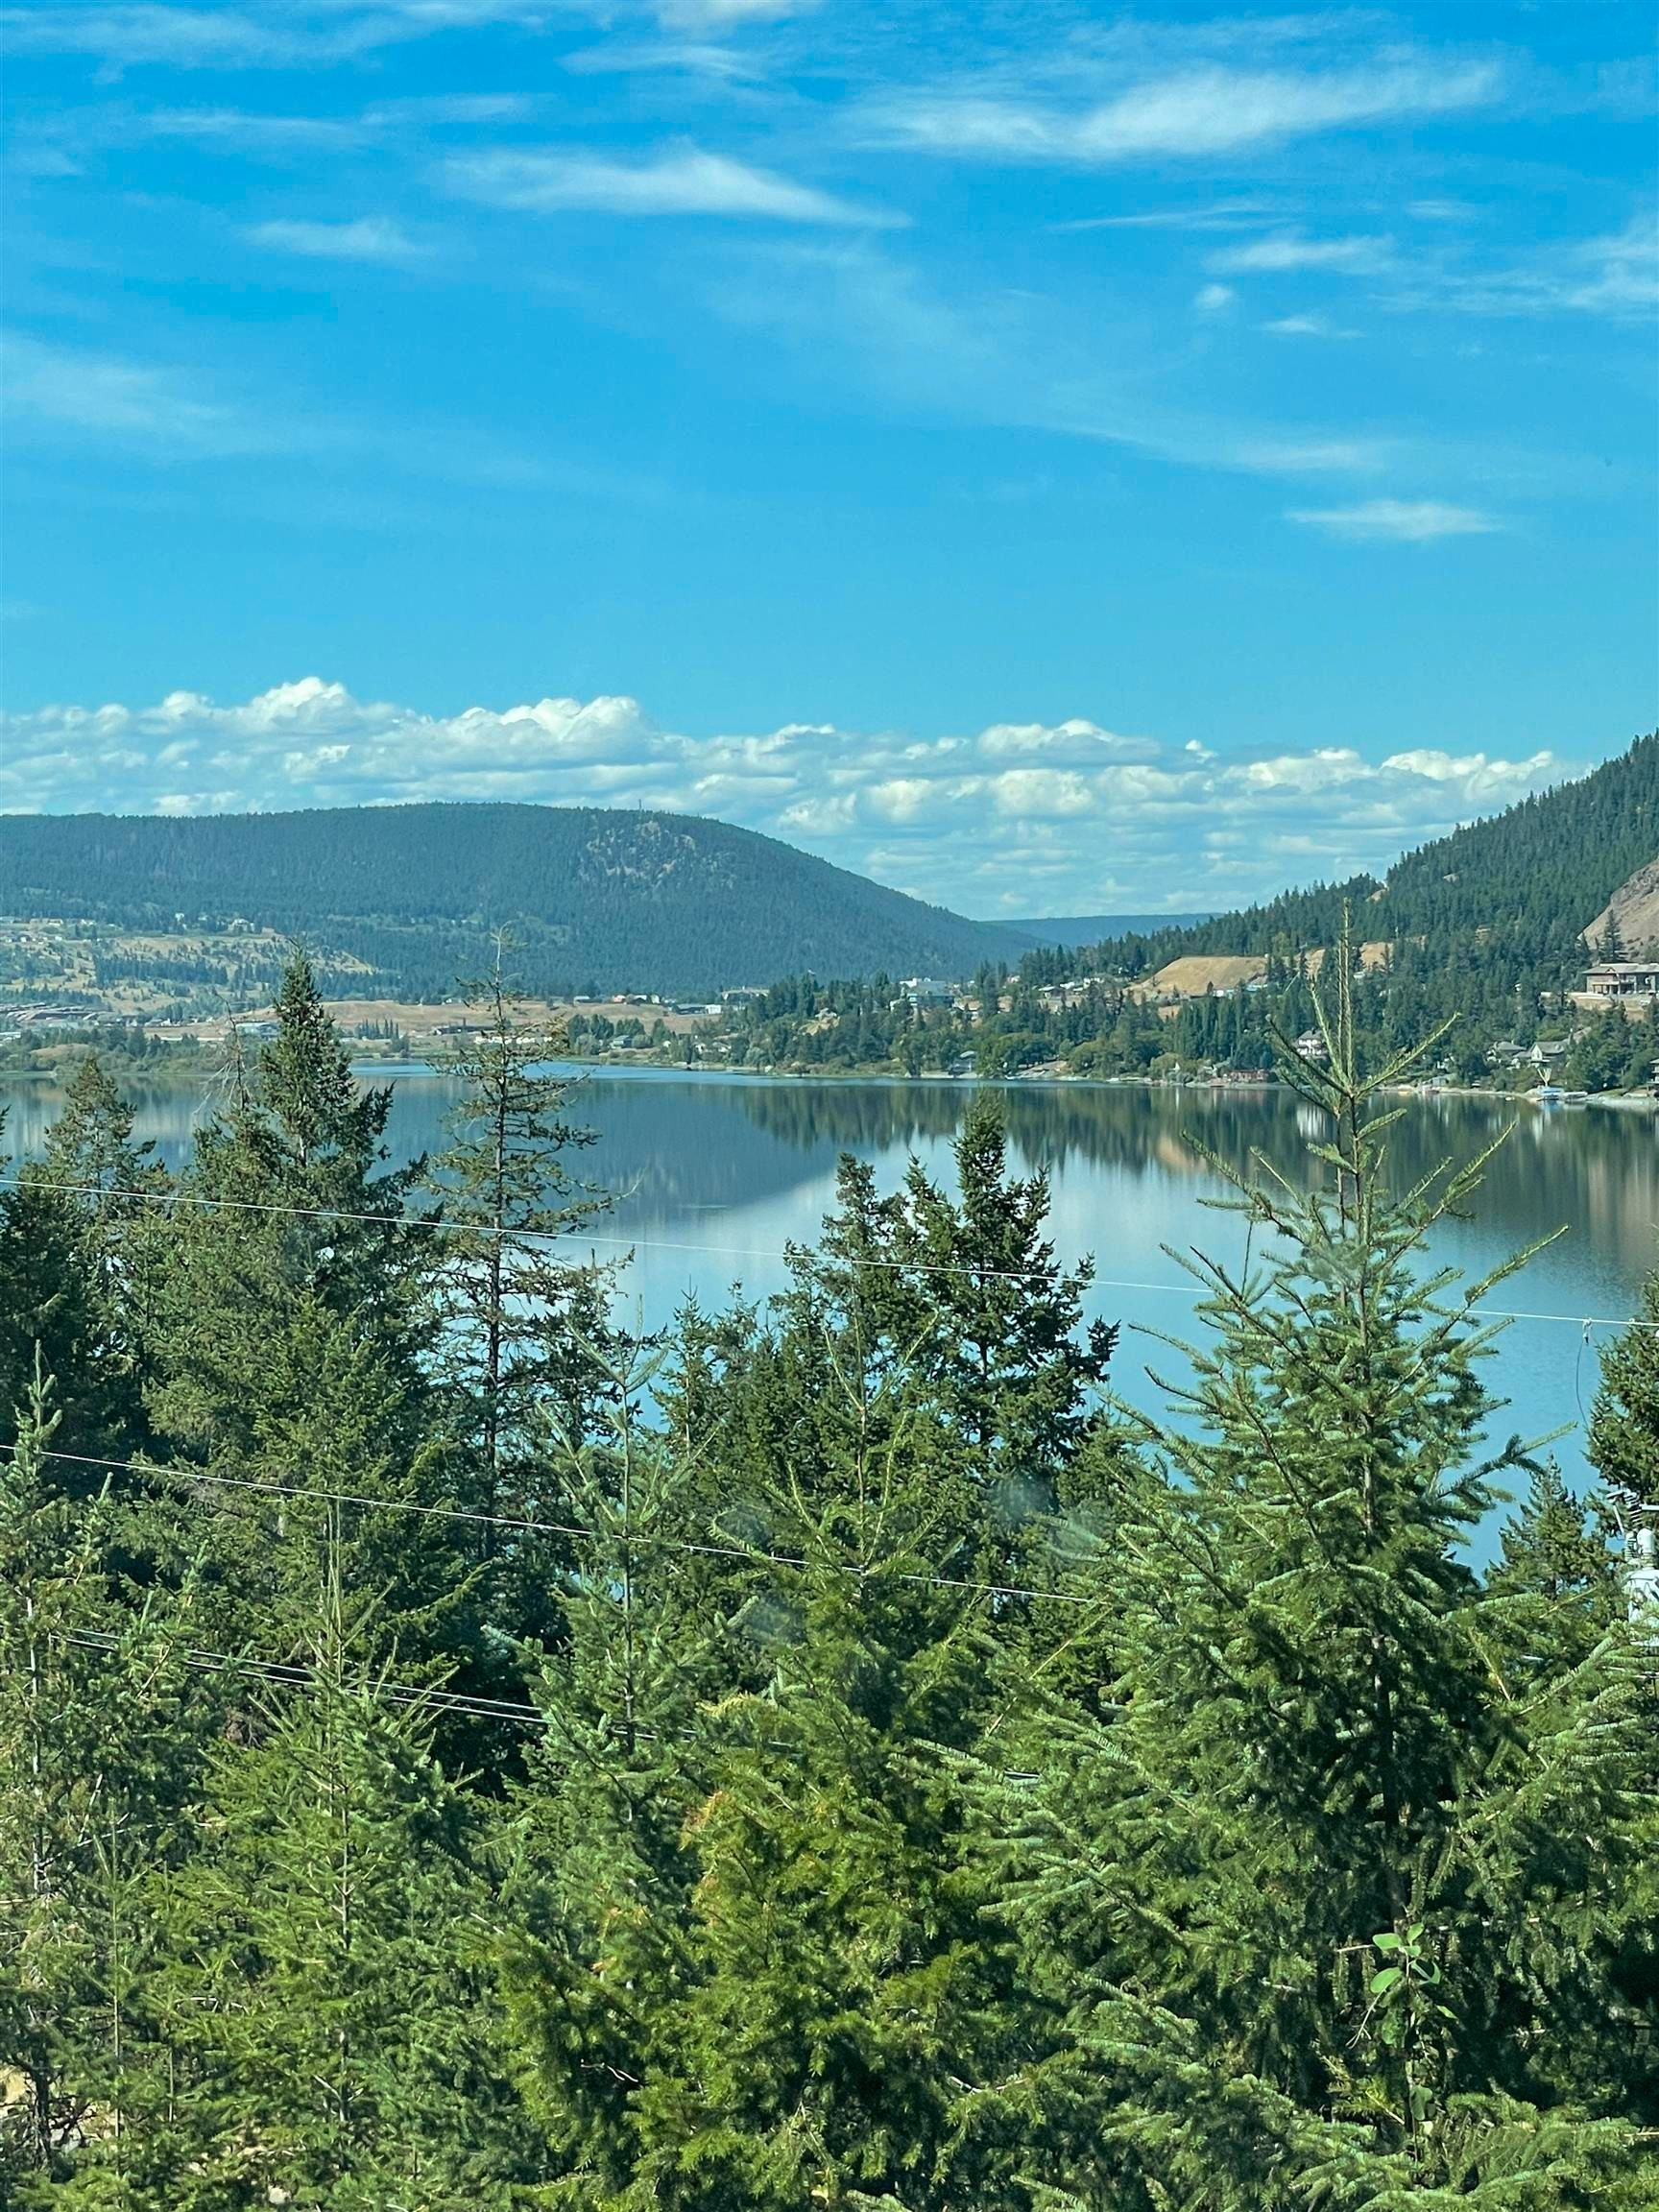 Main Photo: 1803 SOUTH LAKESIDE Drive in Williams Lake: Williams Lake - City Land for sale (Williams Lake (Zone 27))  : MLS®# R2612495